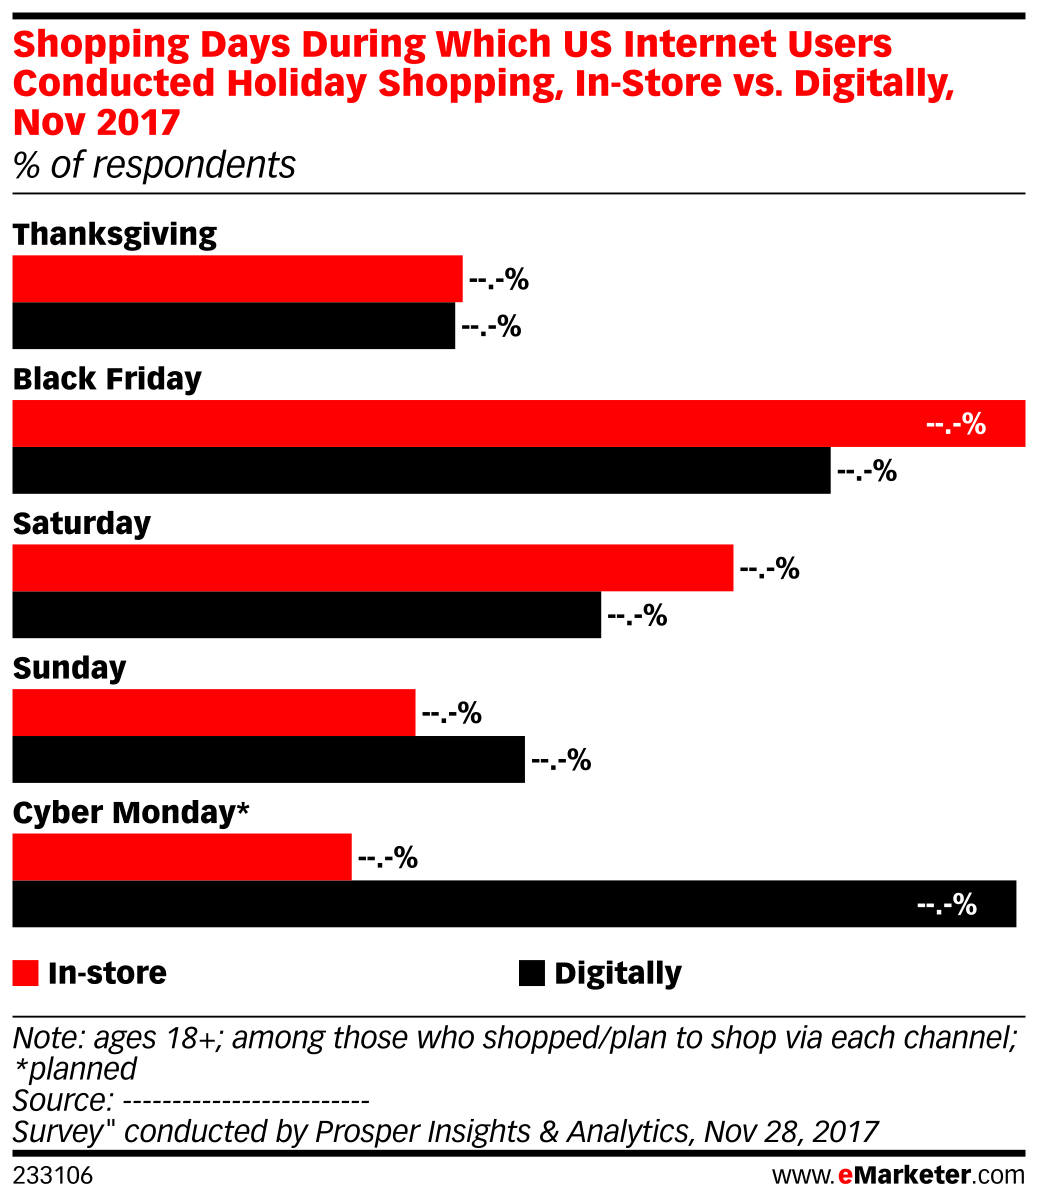 Shopping Days During Which US Internet Users Conducted Holiday Shopping, In-Store vs. Digitally, Nov 2017 (% of respondents)